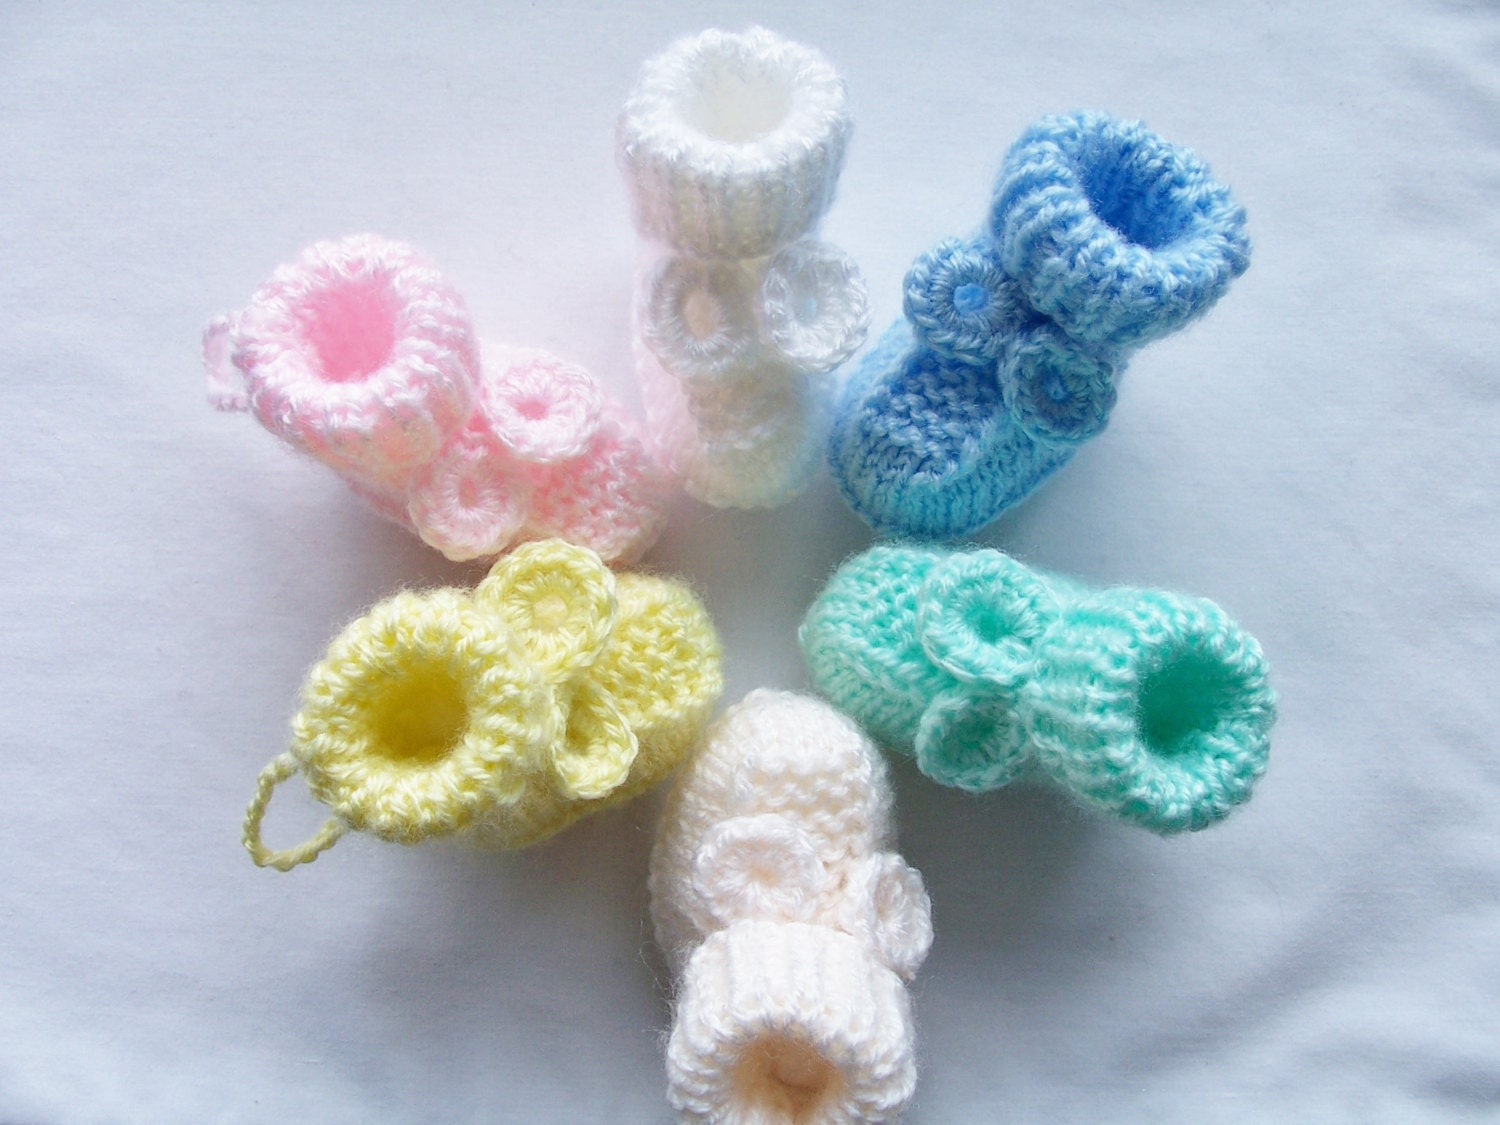 Popular items for baby decorations on Etsy